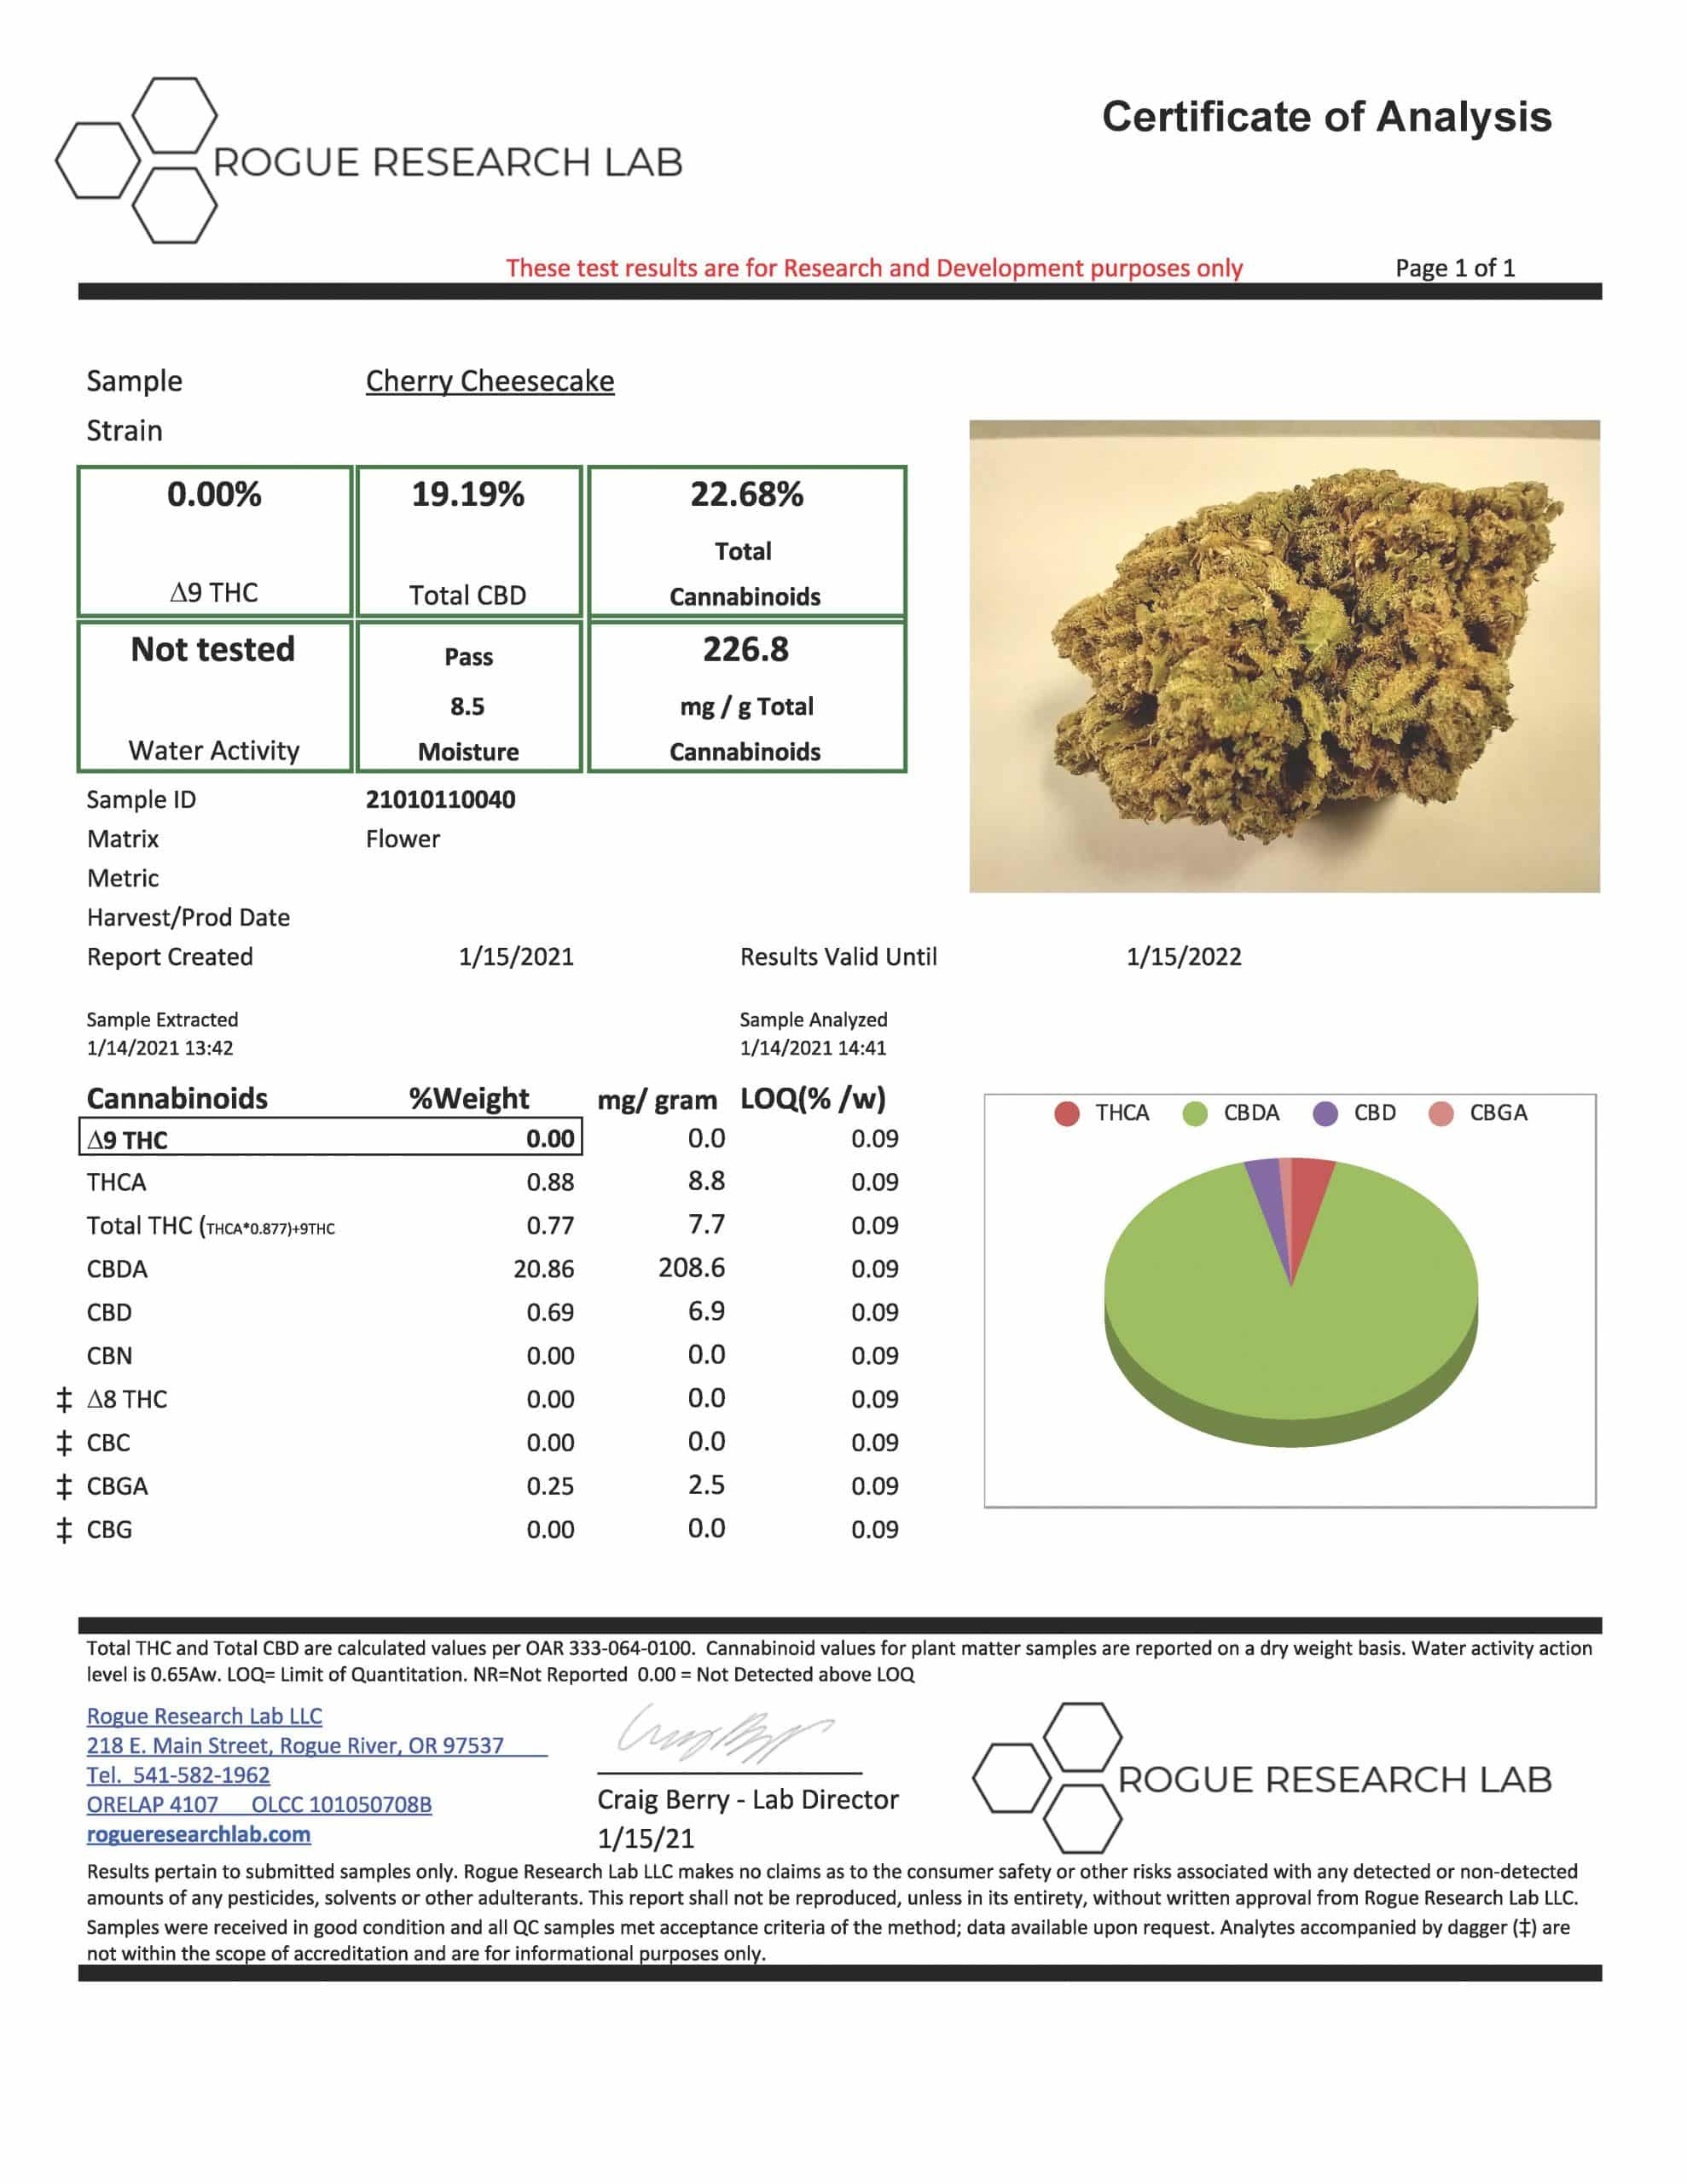 Certificate of authentication for Cheese Cake CBD flower